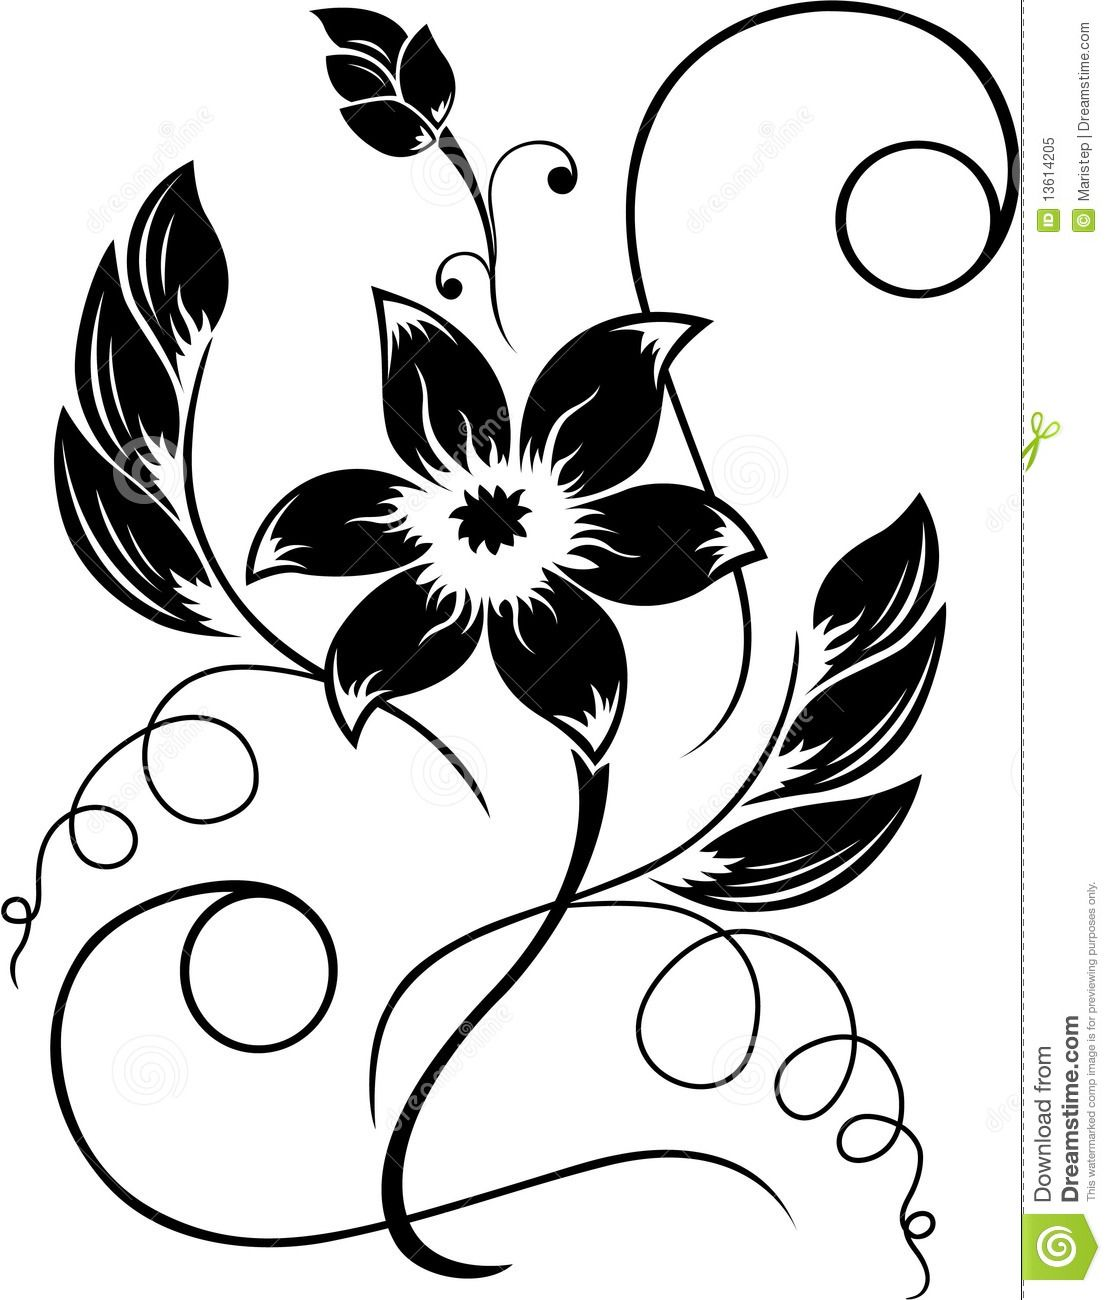 17 Best images about Flower Drawings on Pinterest | Royalty free ...